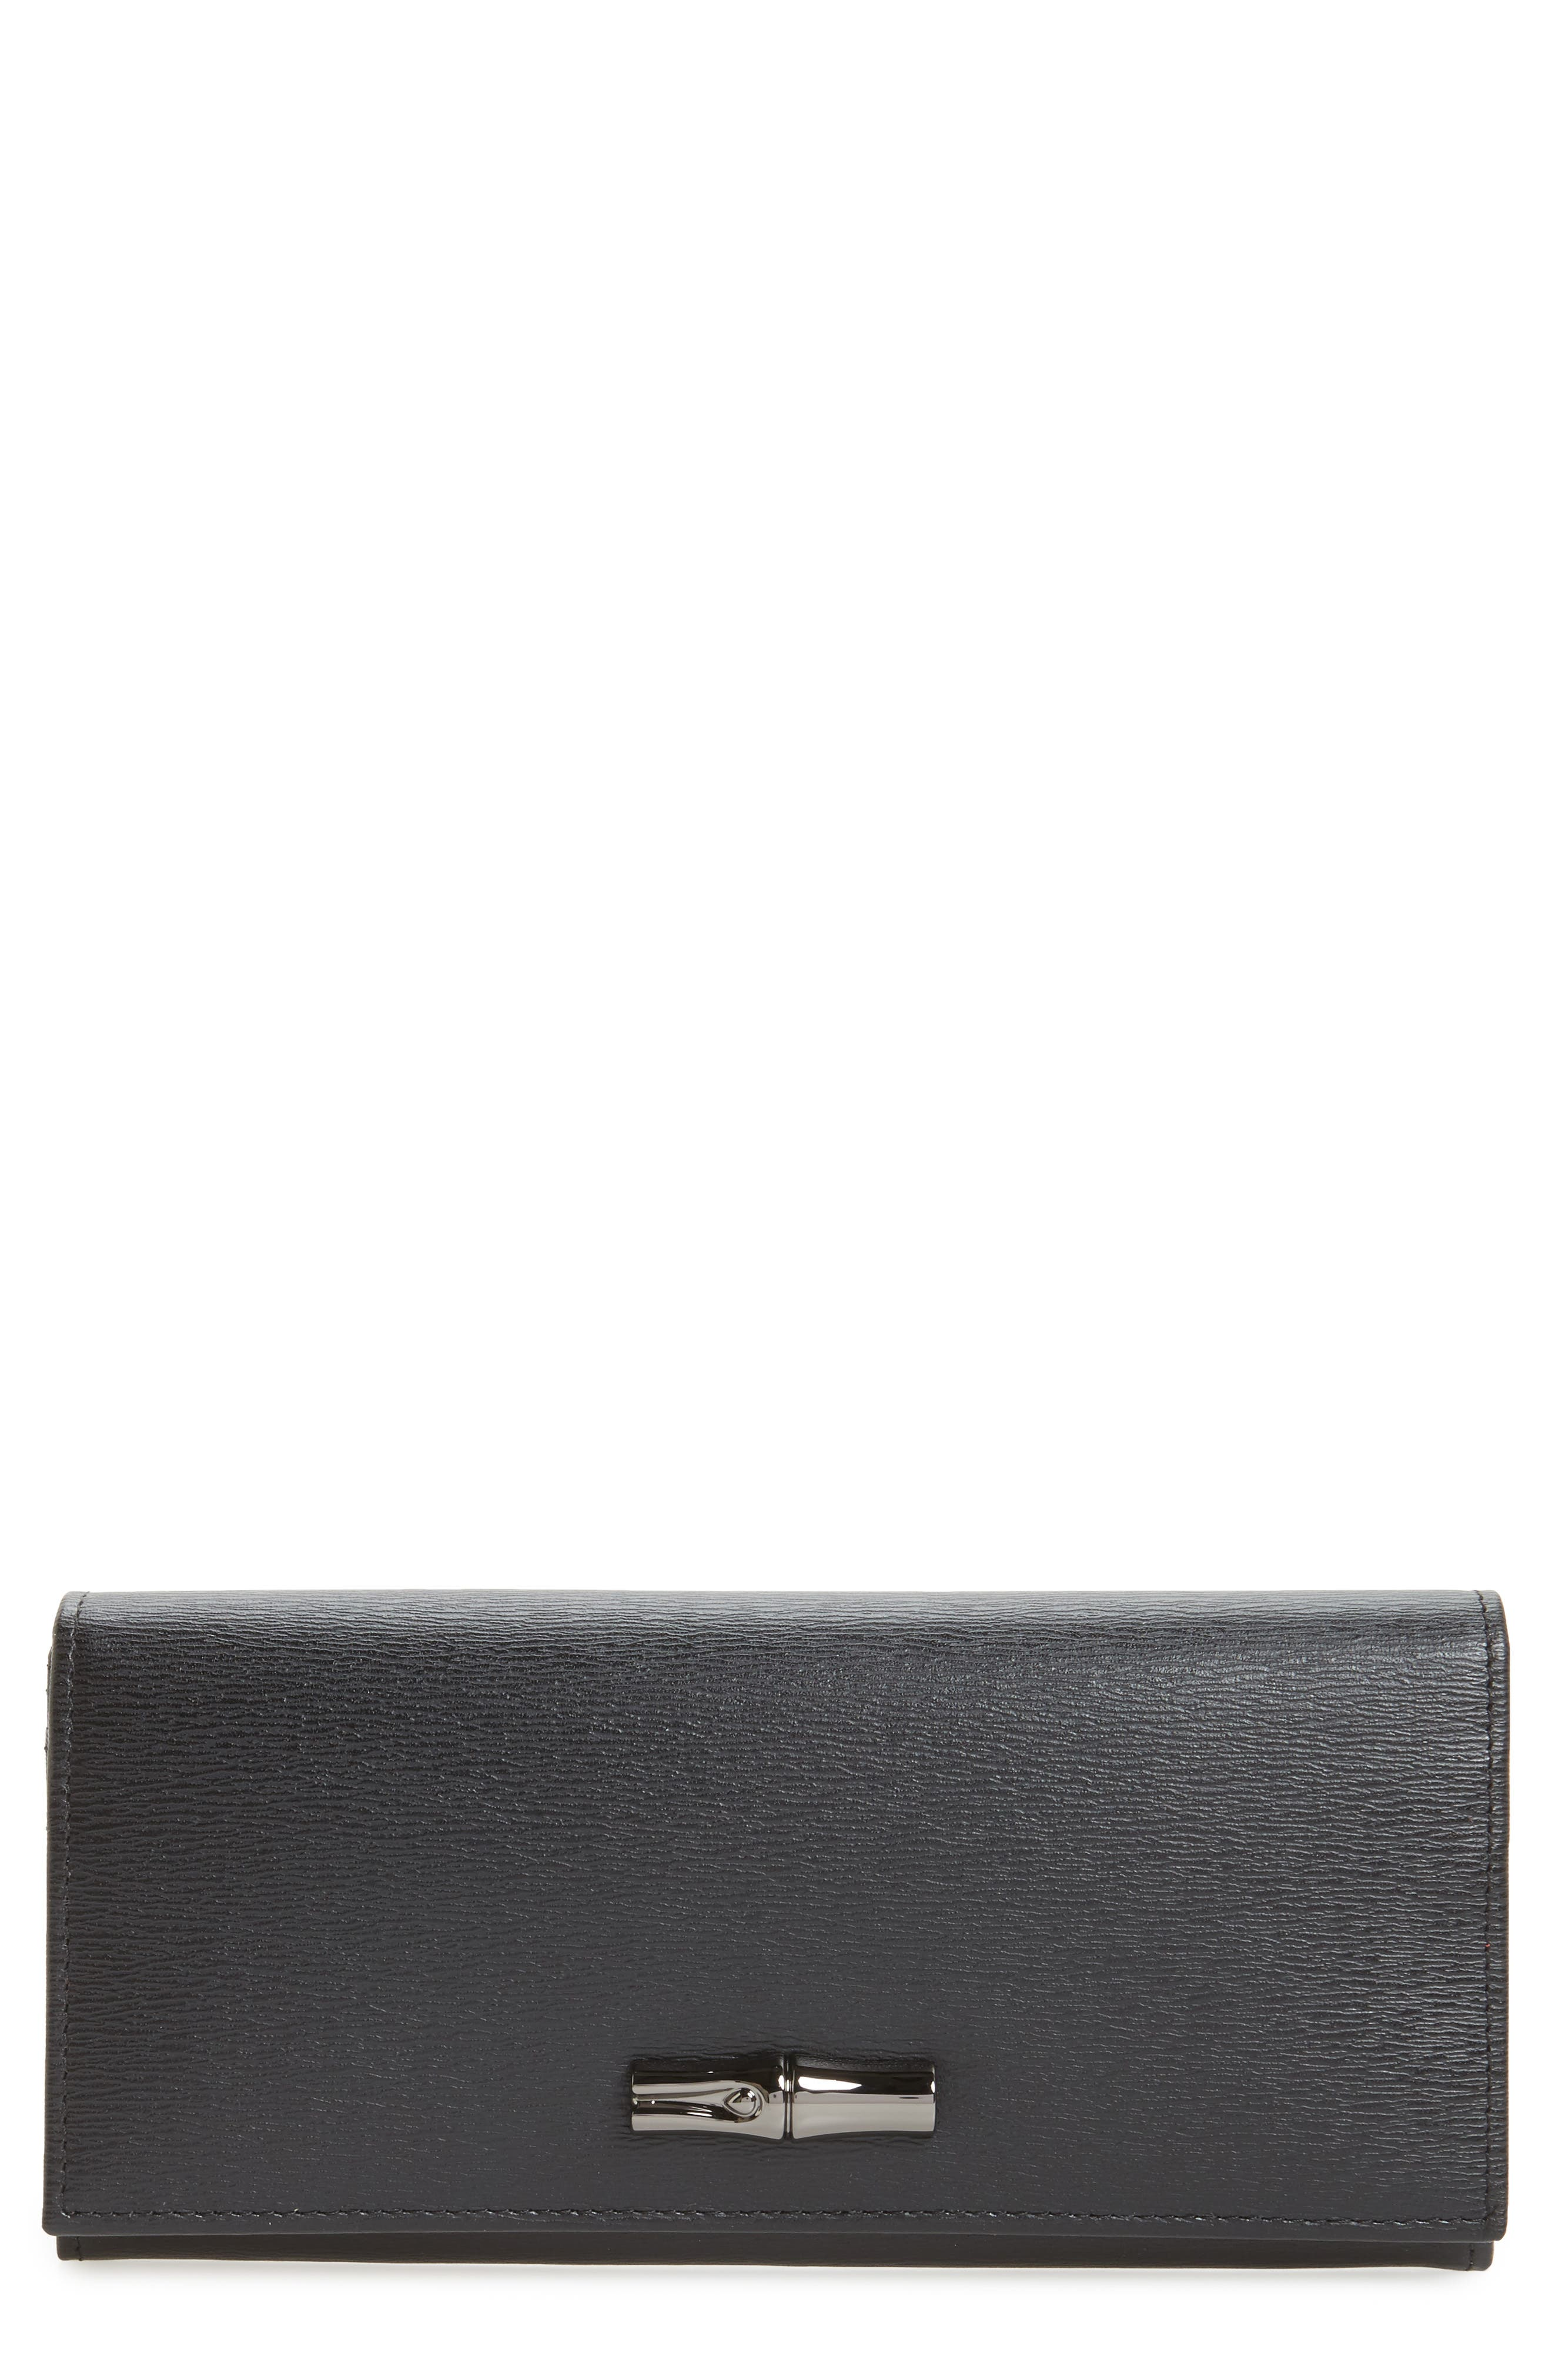 Roseau Leather Continental Wallet,                         Main,                         color, 002